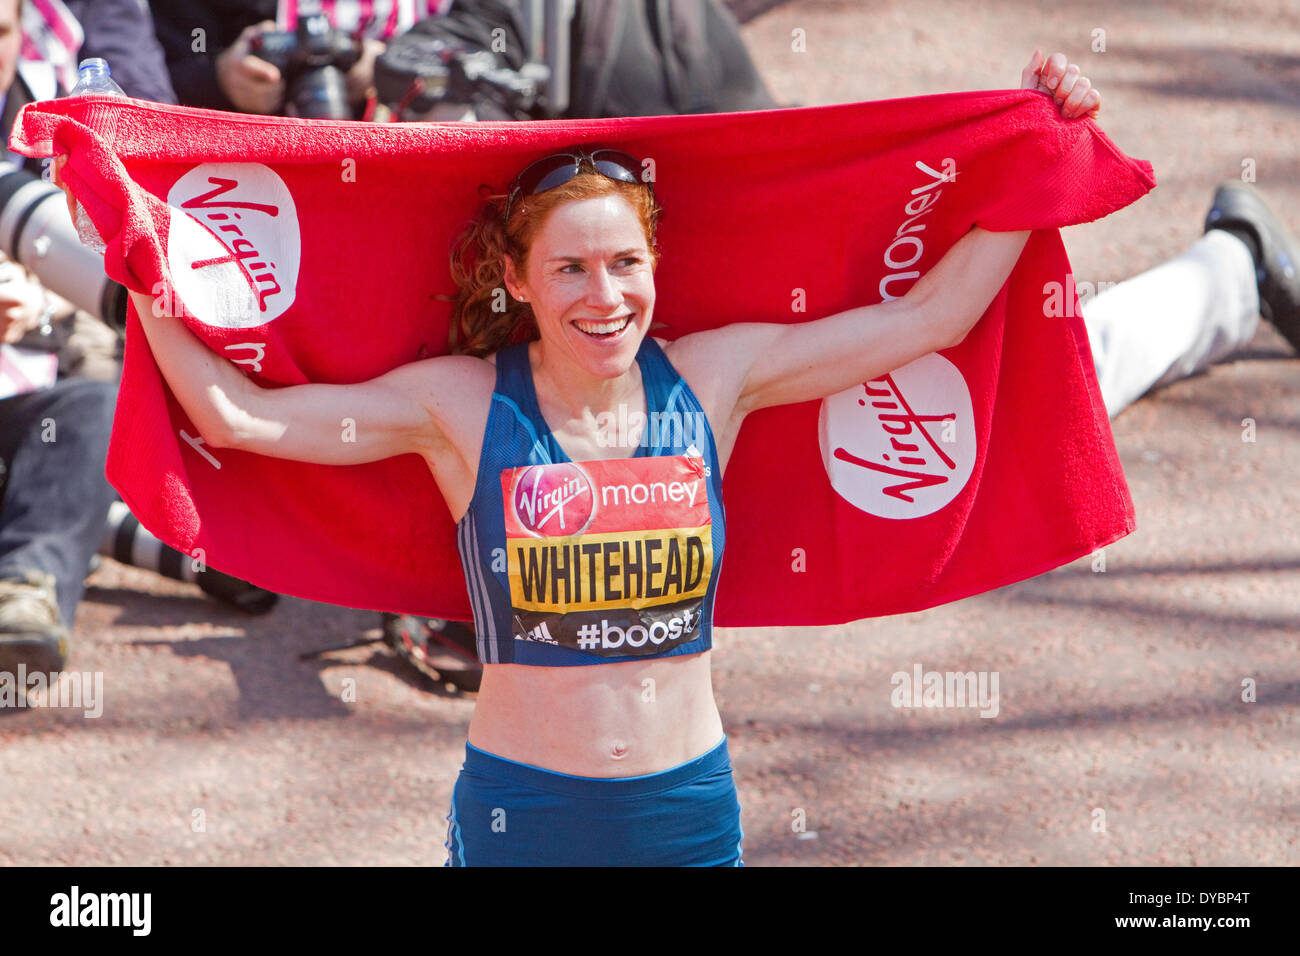 London, UK. 13th April, 2014,Amy Whitehead poses after finishing the London Marathon   Credit:  Keith Larby/Alamy Live News - Stock Image